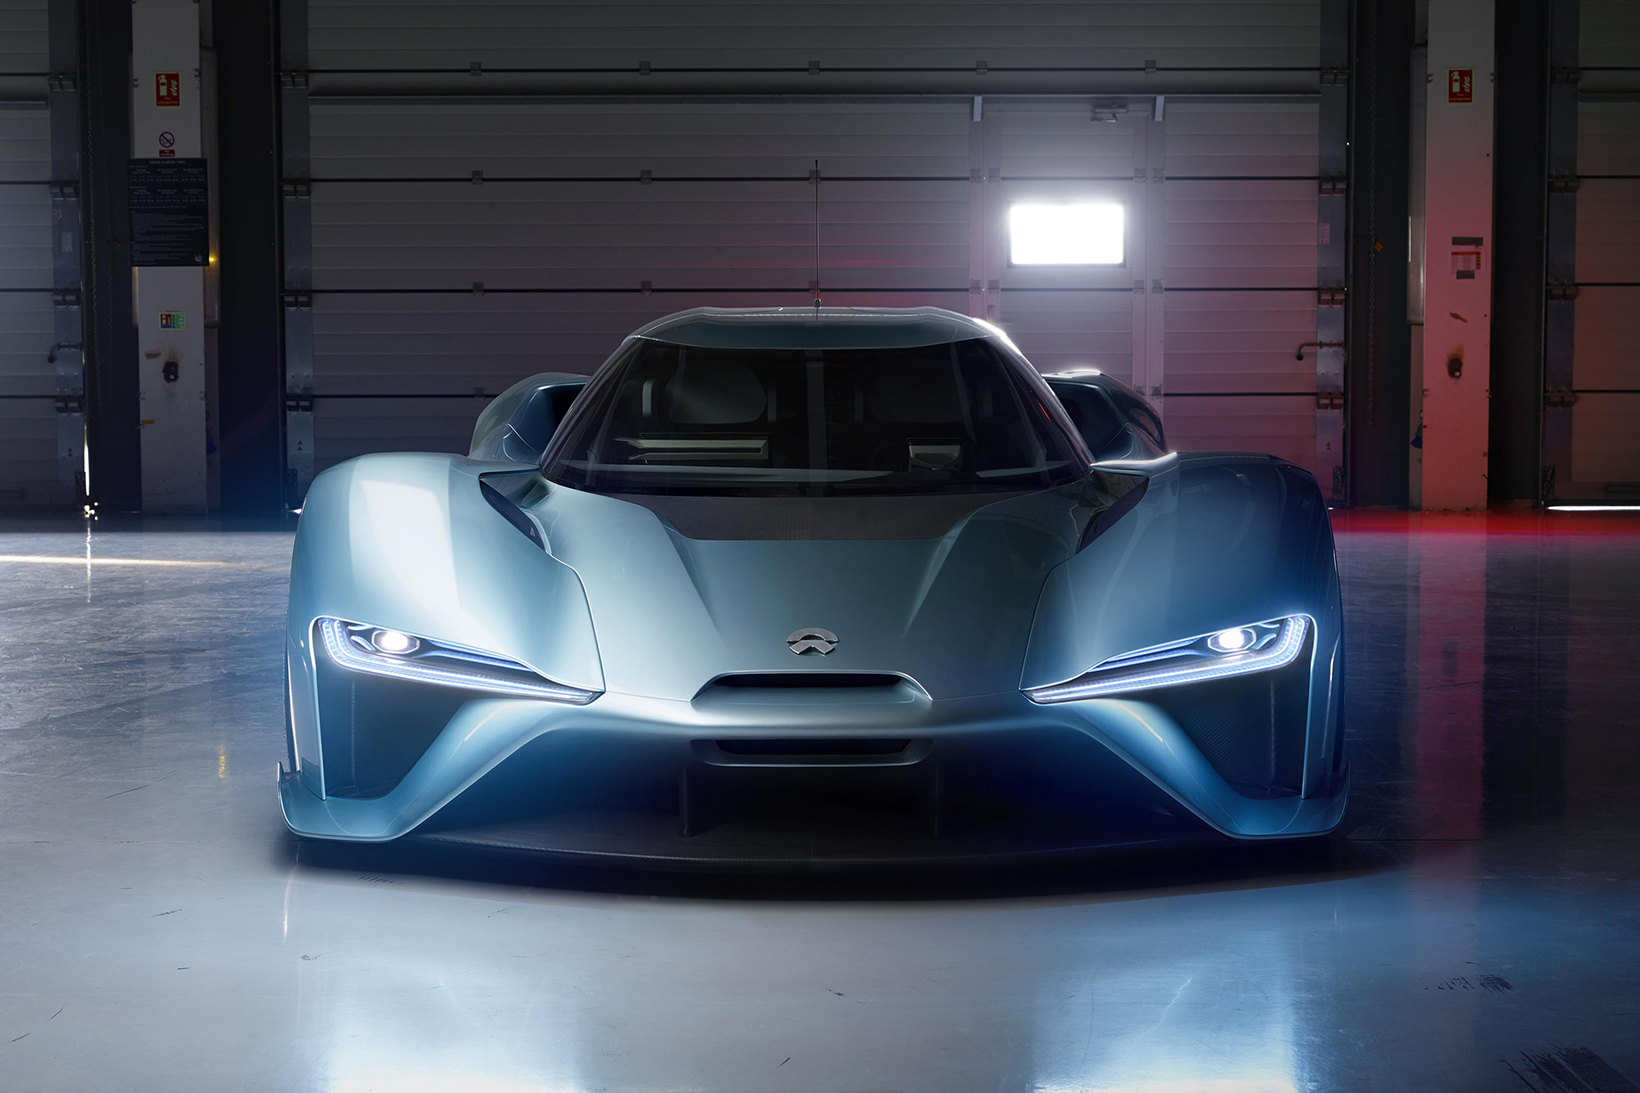 real helicopter price in india with Nio Ep9 Fastest Electric Car on Prince William And Kate Middleton Marry additionally See The Top 6 Newest Guns Israel Will Use If Conflict Breaks Out further Stereotypes furthermore Perezhilton as well The 2011 Ferrari 458 Italia.